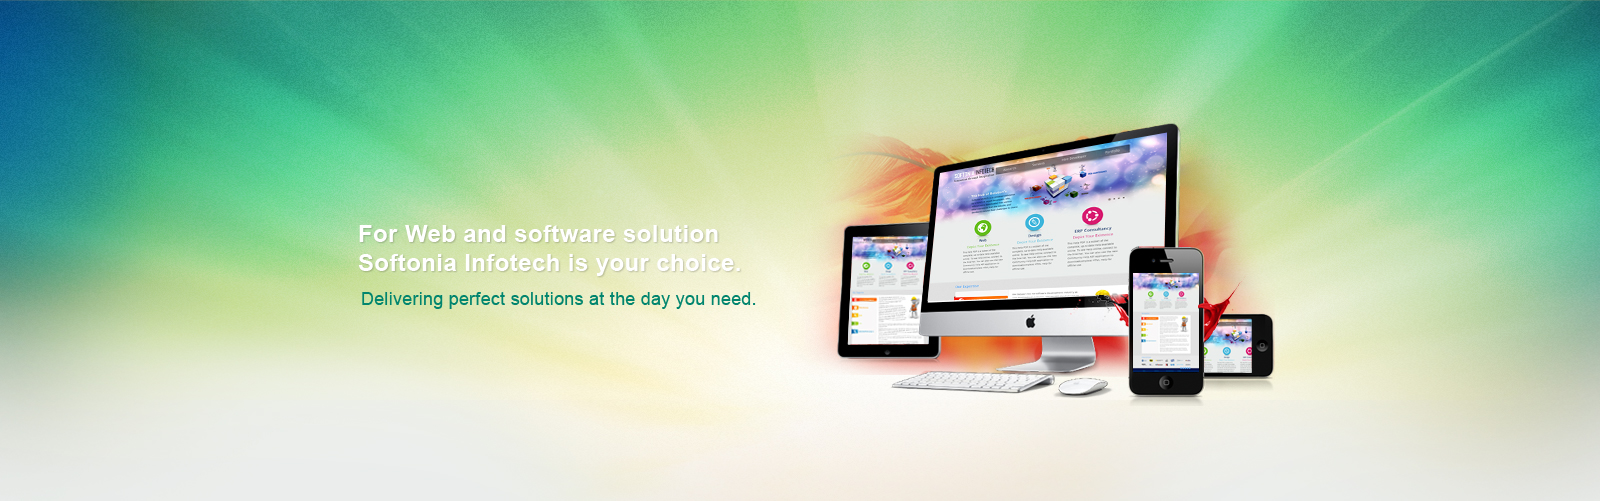 Software And Web Solutions